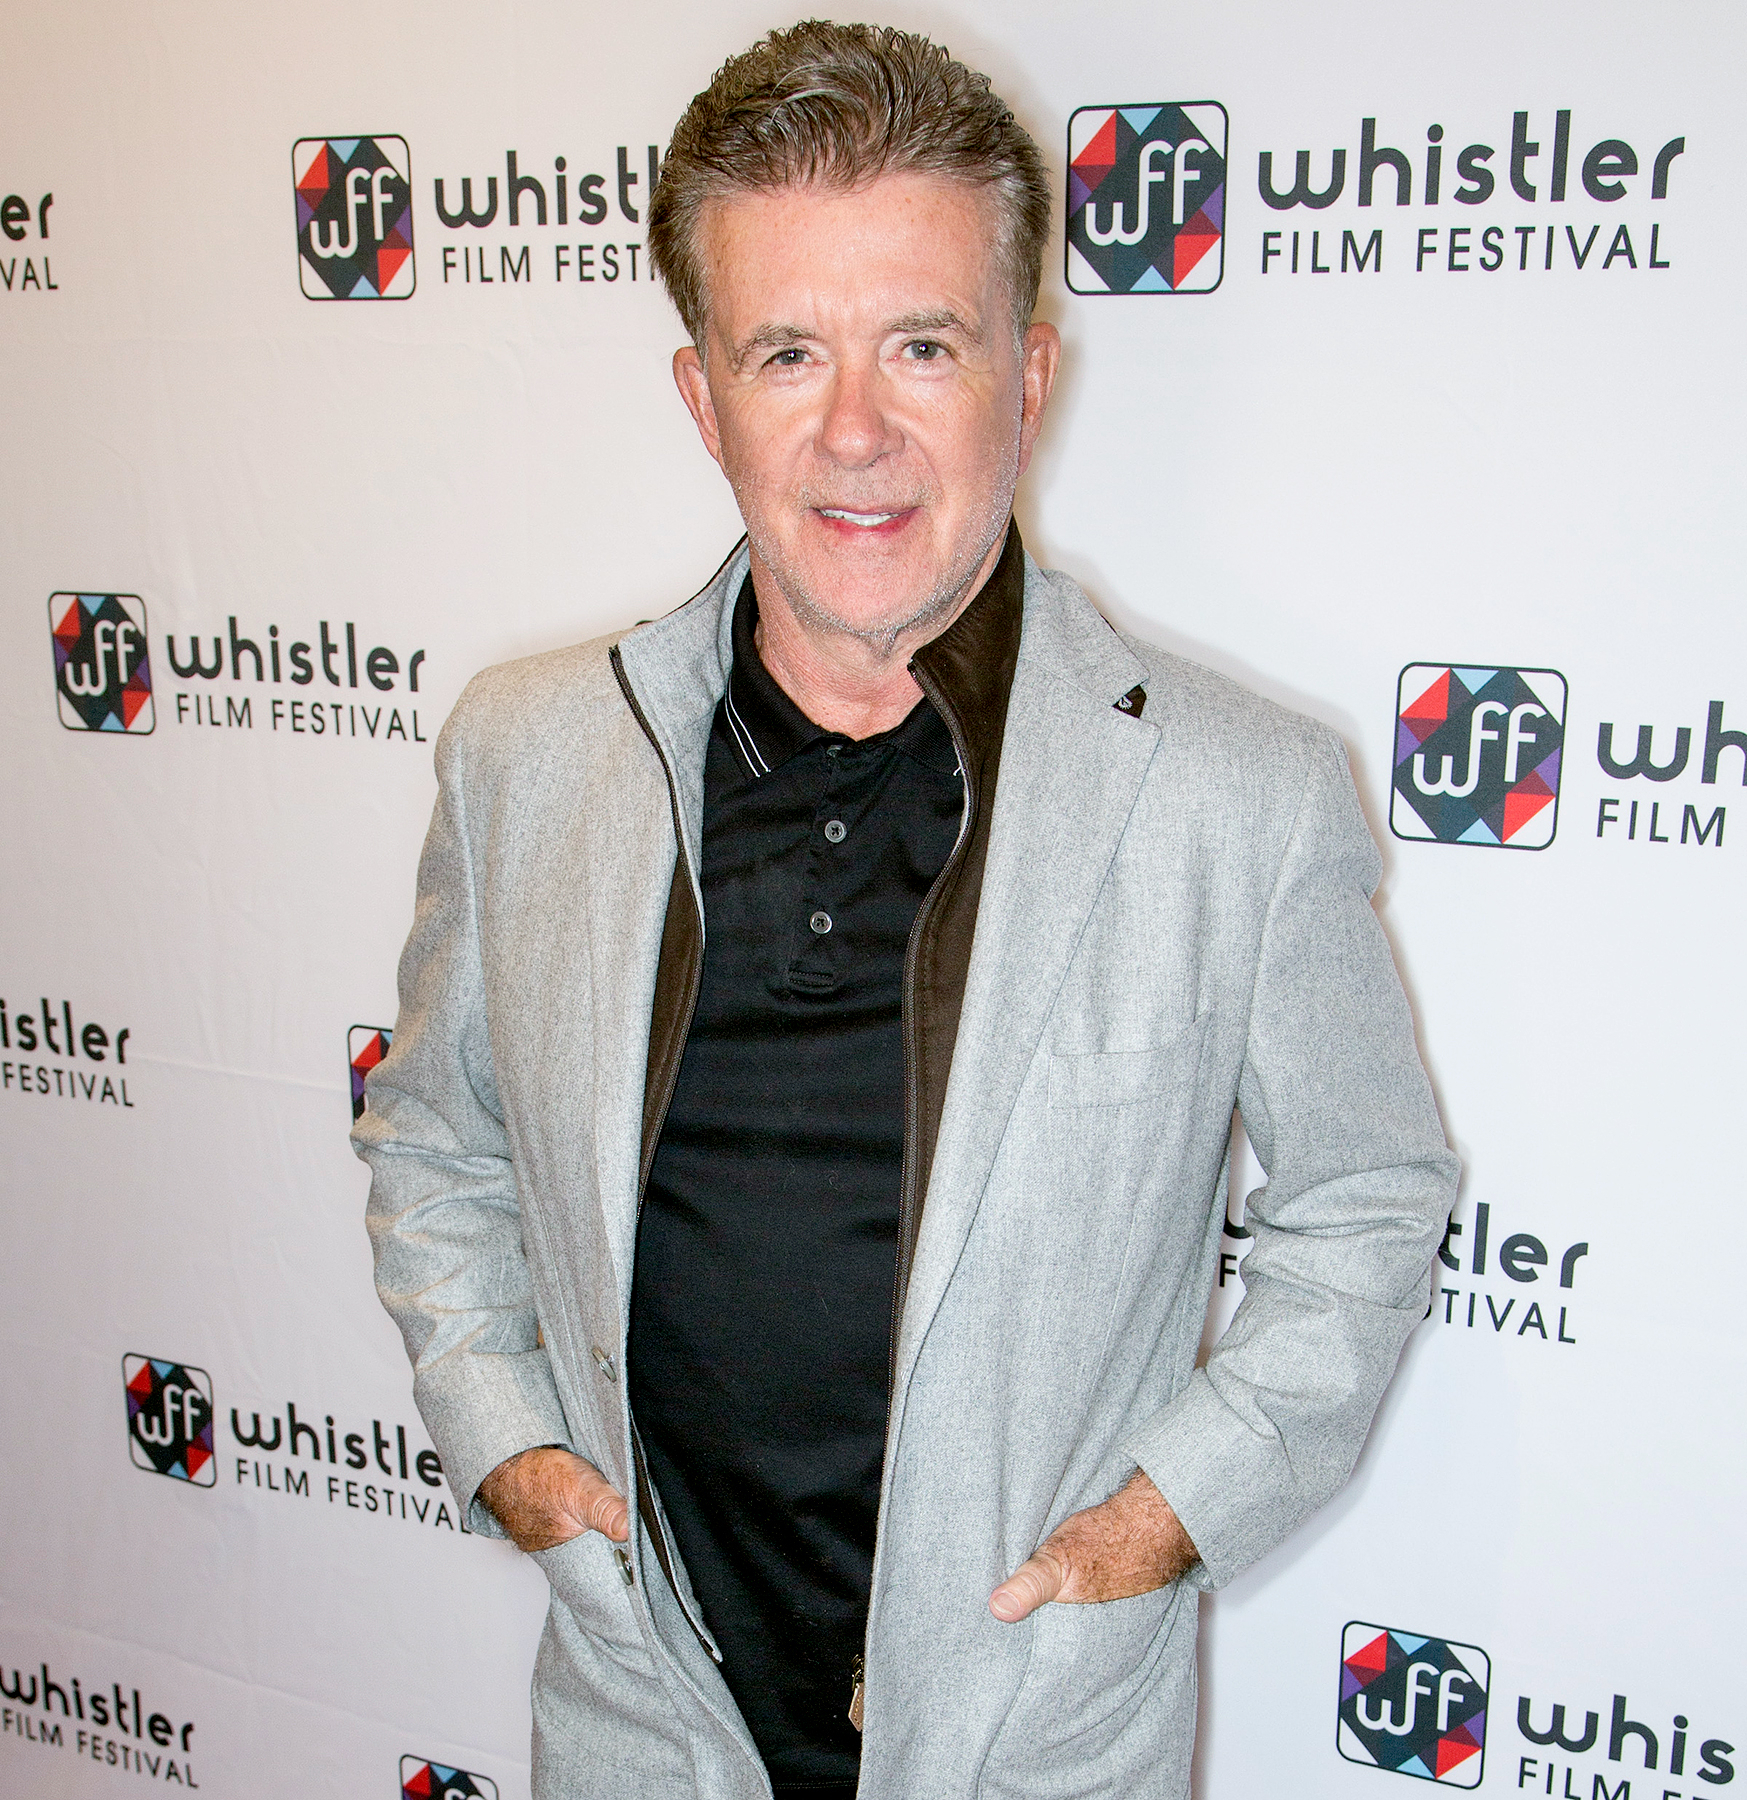 """Alan Thicke attends the Whistler Film Festival """"Signature Series: Tribute to Alan Thicke"""" during the 2016 Whistler Film Festival on December 2, 2016 in Whistler, Canada. He received WFF's Canadian Icon Award."""